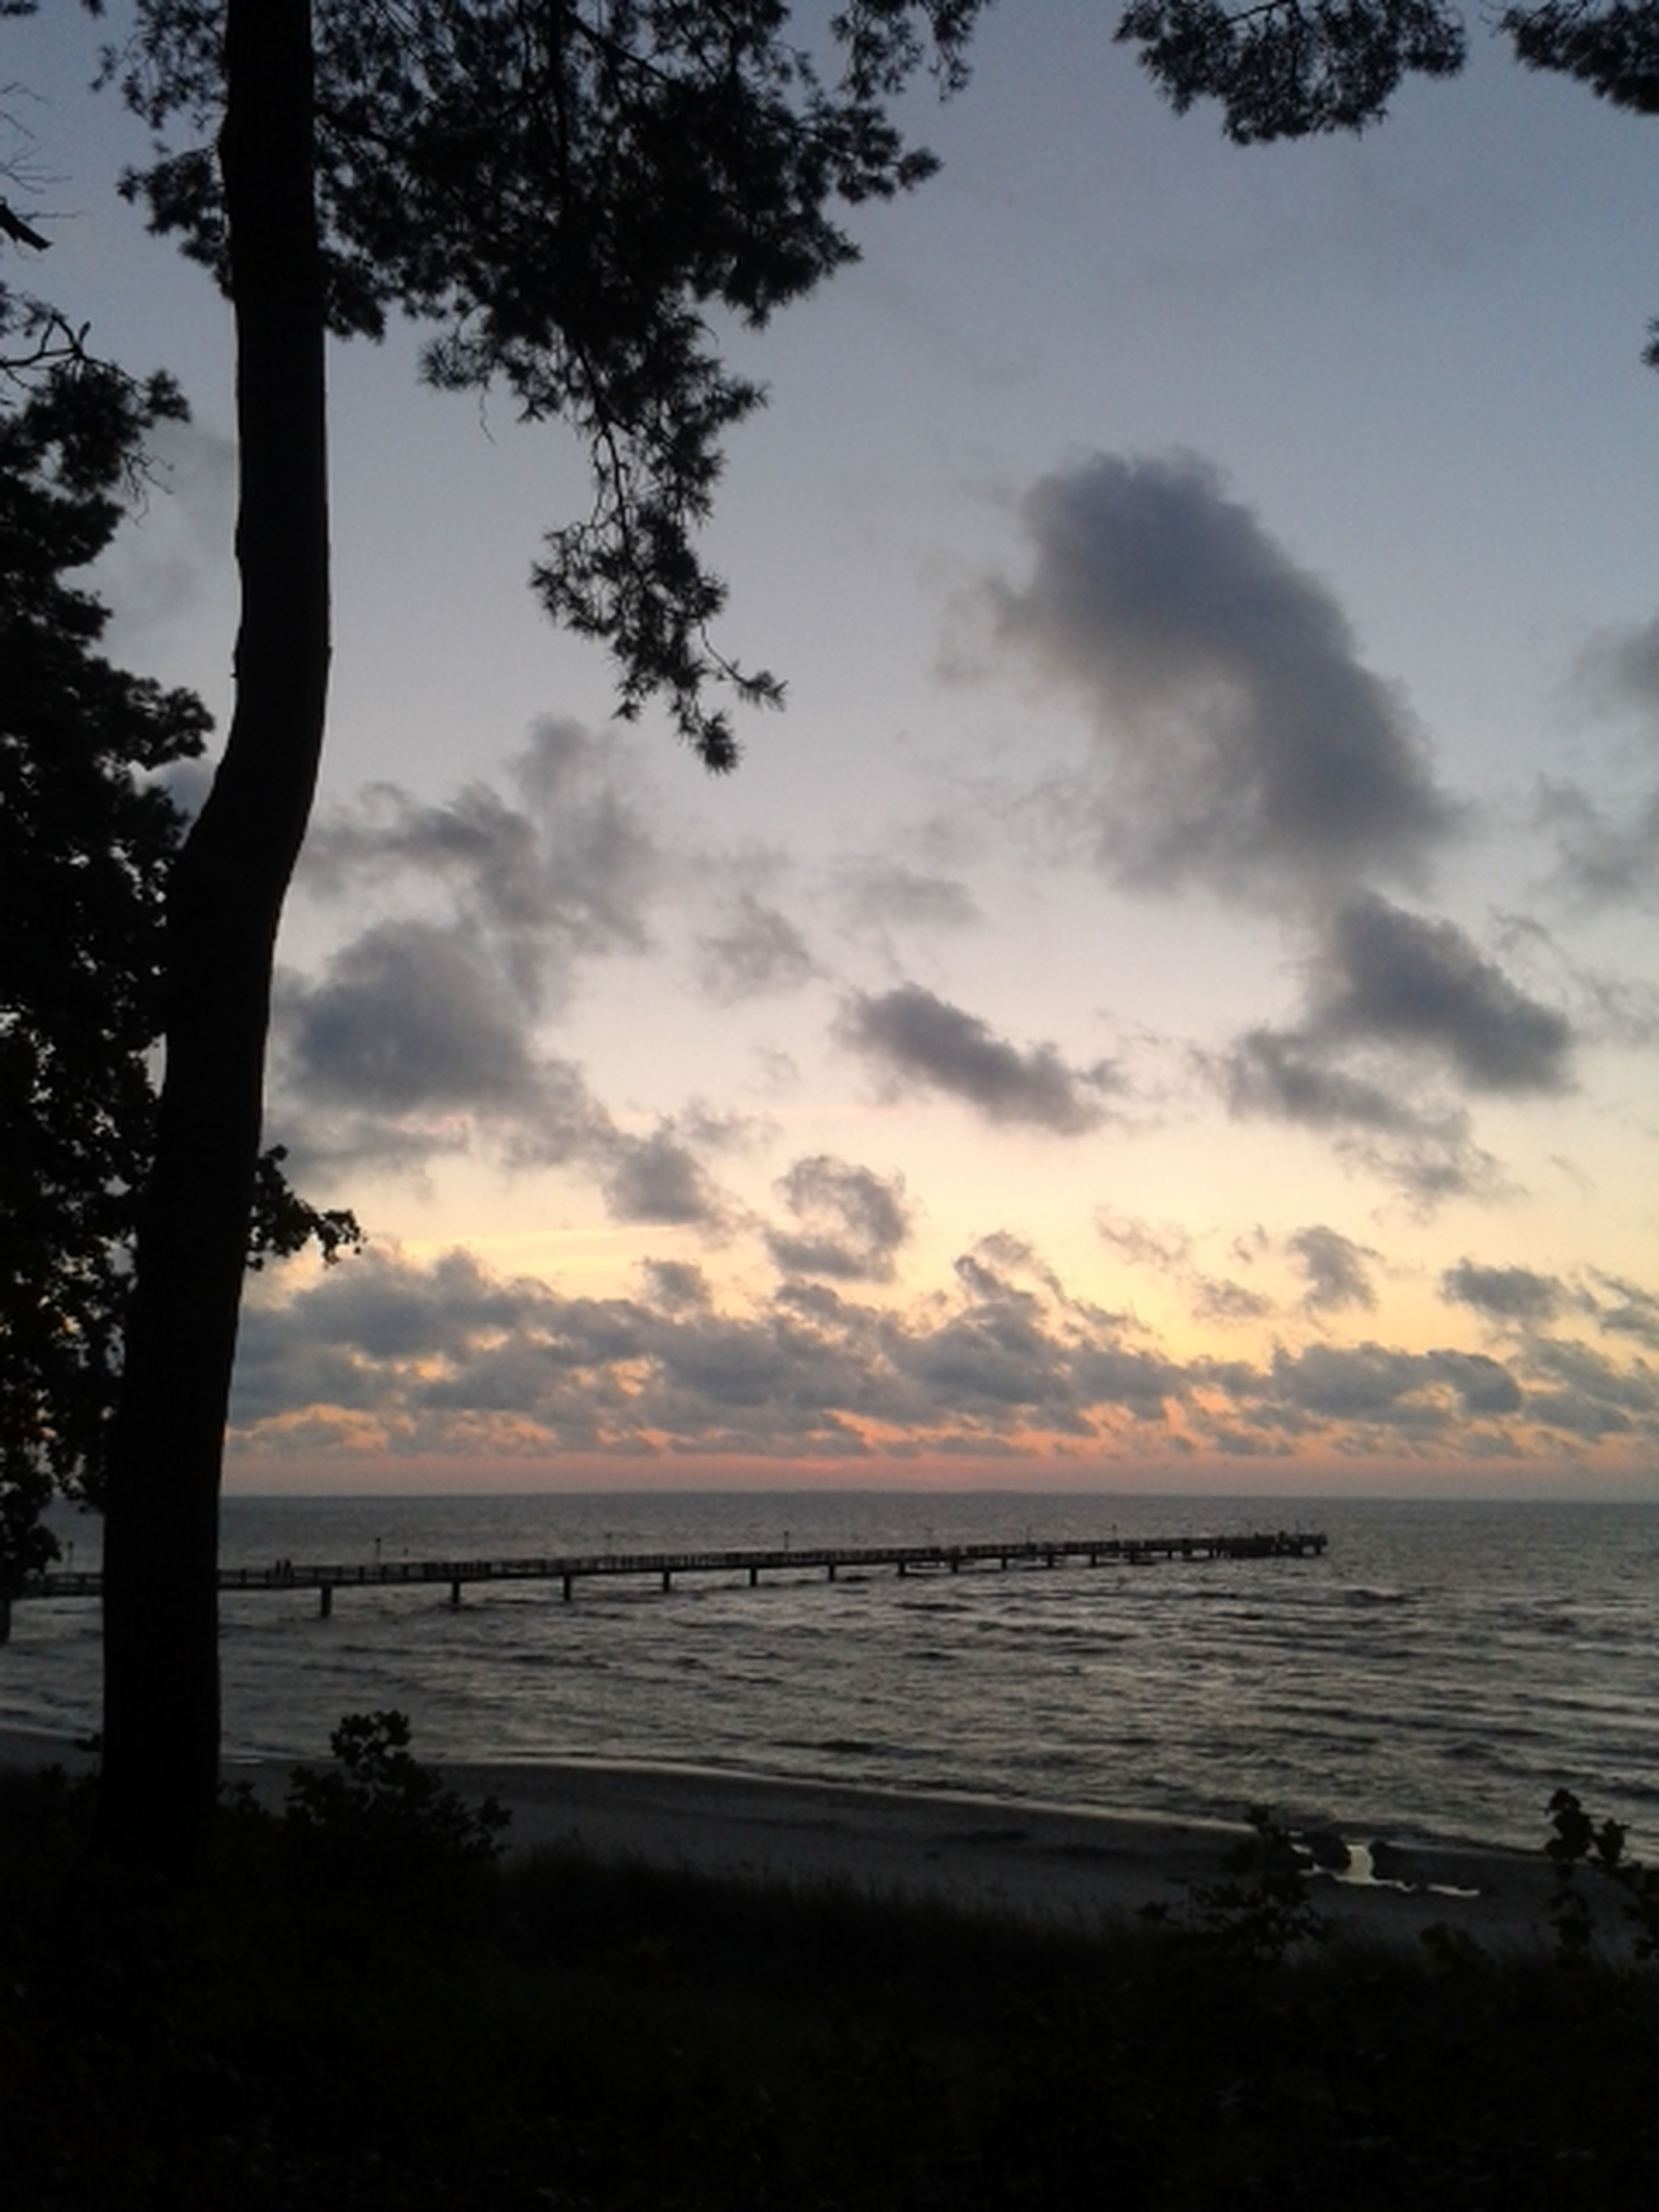 sky, sea, cloud - sky, water, tree, scenics, tranquil scene, horizon over water, beach, beauty in nature, tranquility, nature, cloudy, sunset, cloud, silhouette, shore, idyllic, outdoors, incidental people